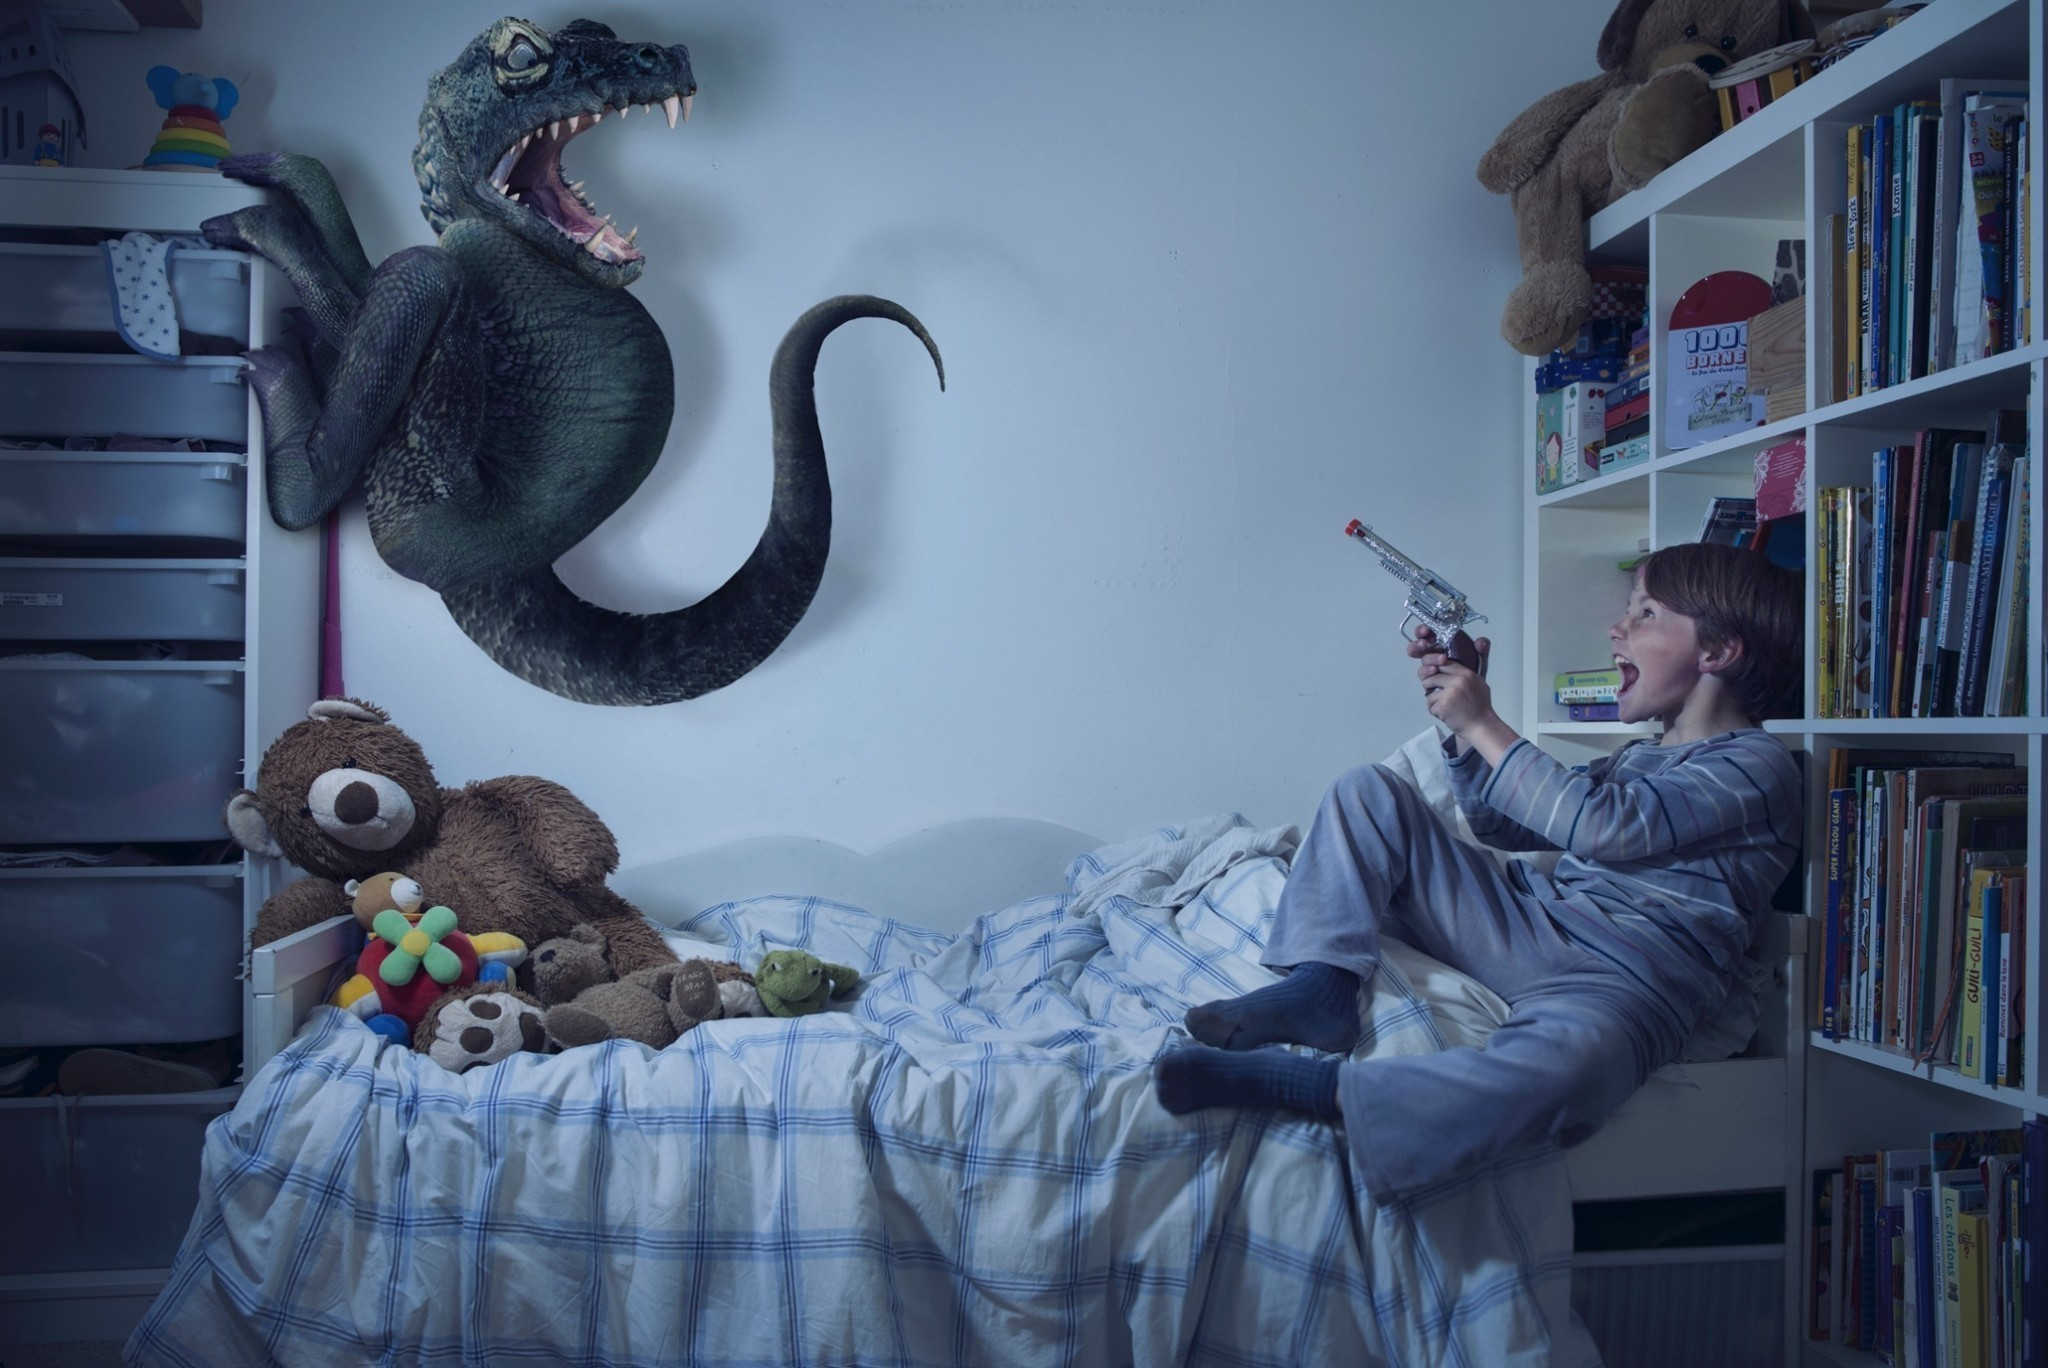 Kids battle the monsters of their nightmares - in pictures